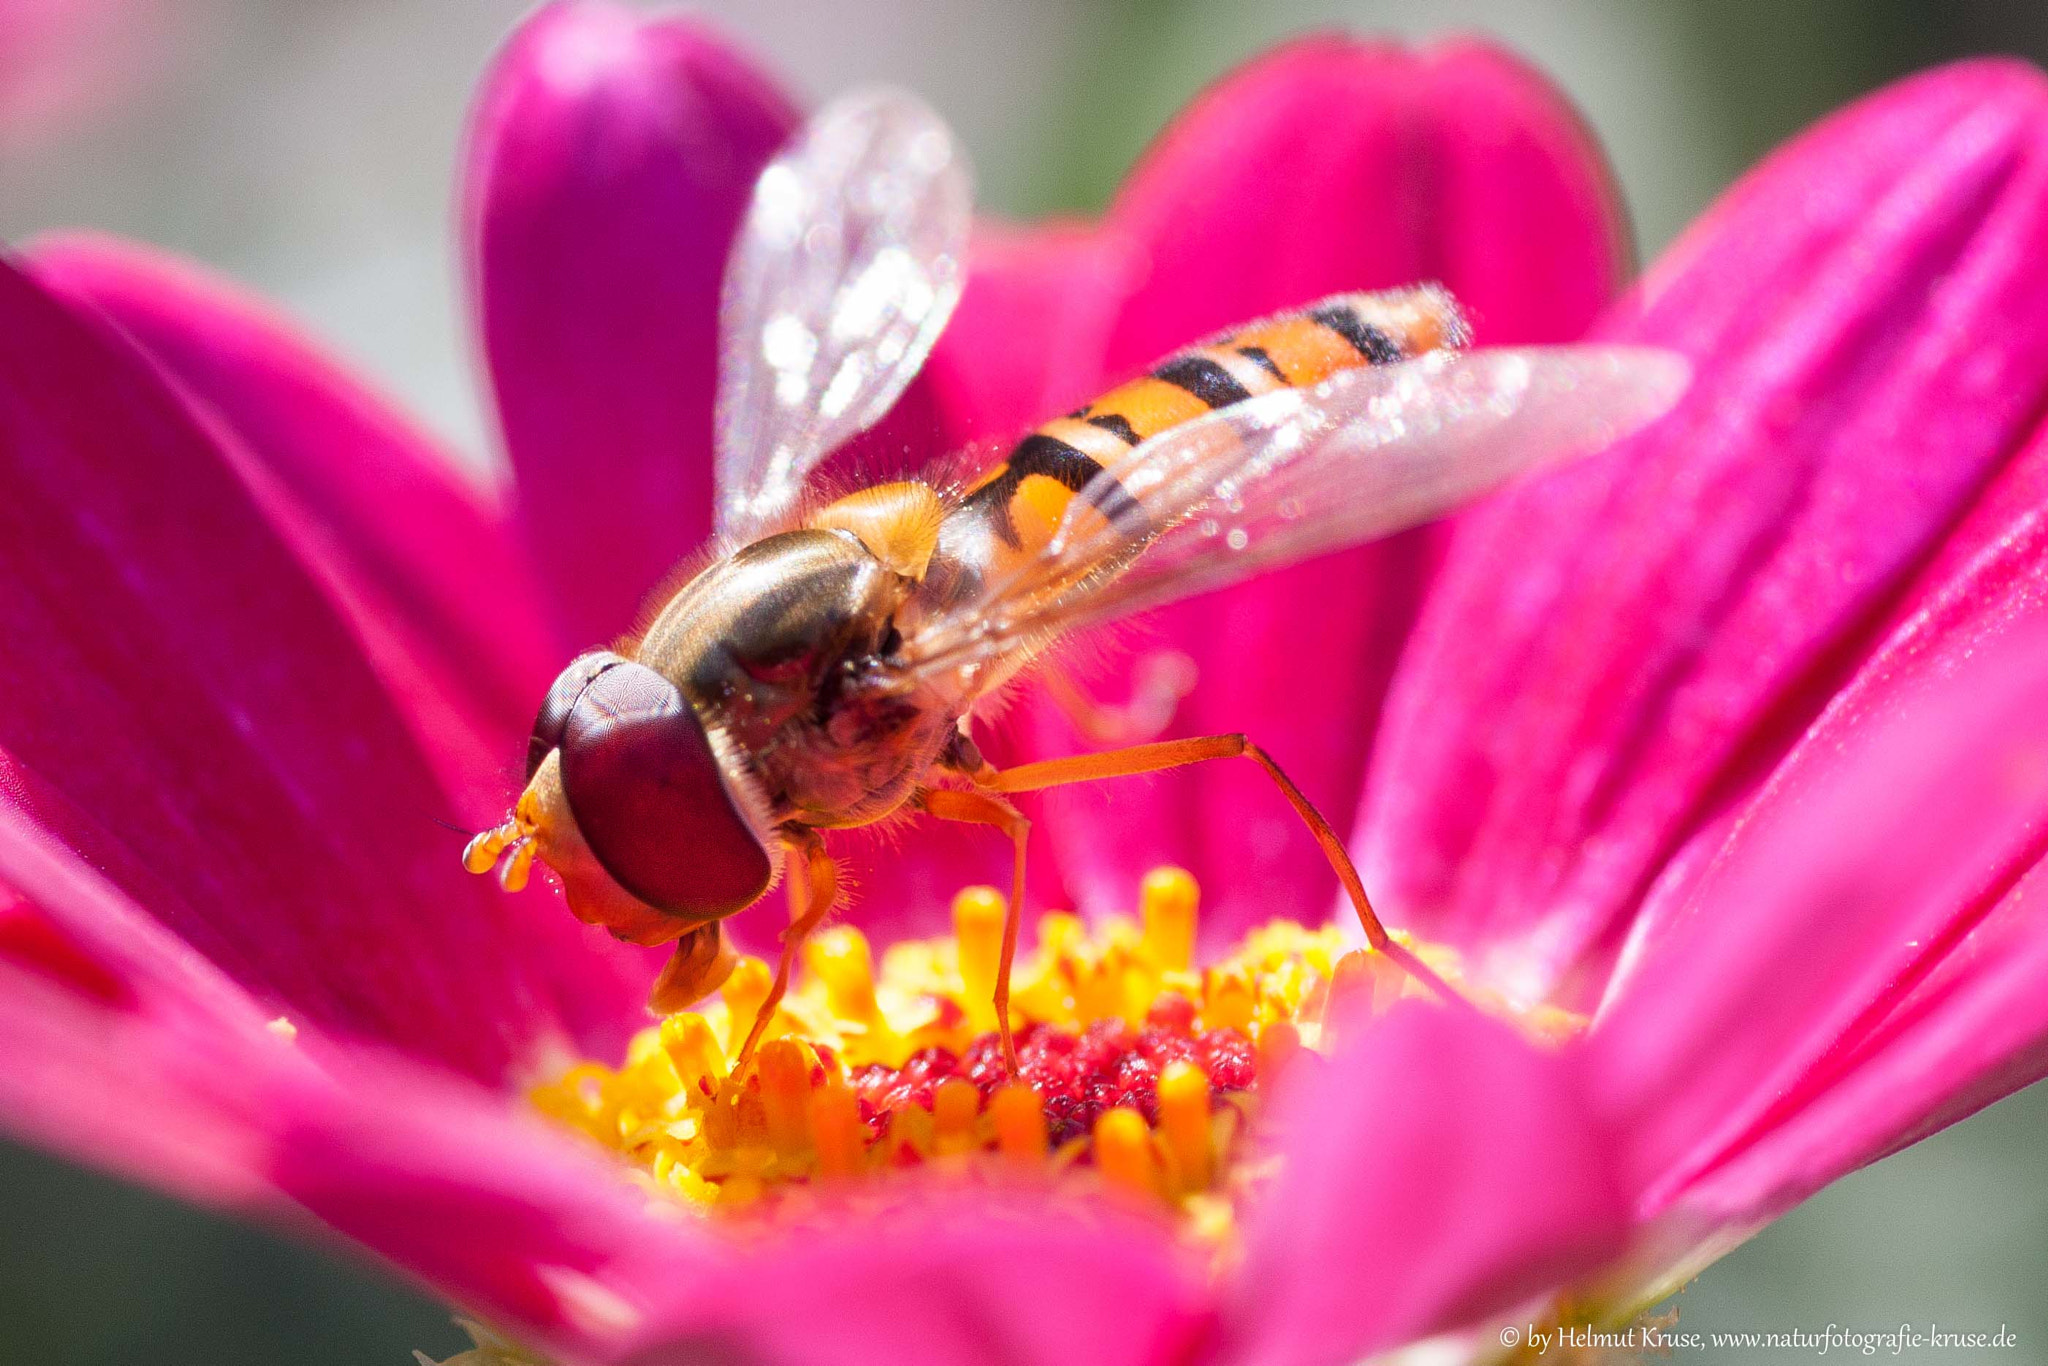 Photograph A closer view of a hoverfly by Helmut Kruse on 500px